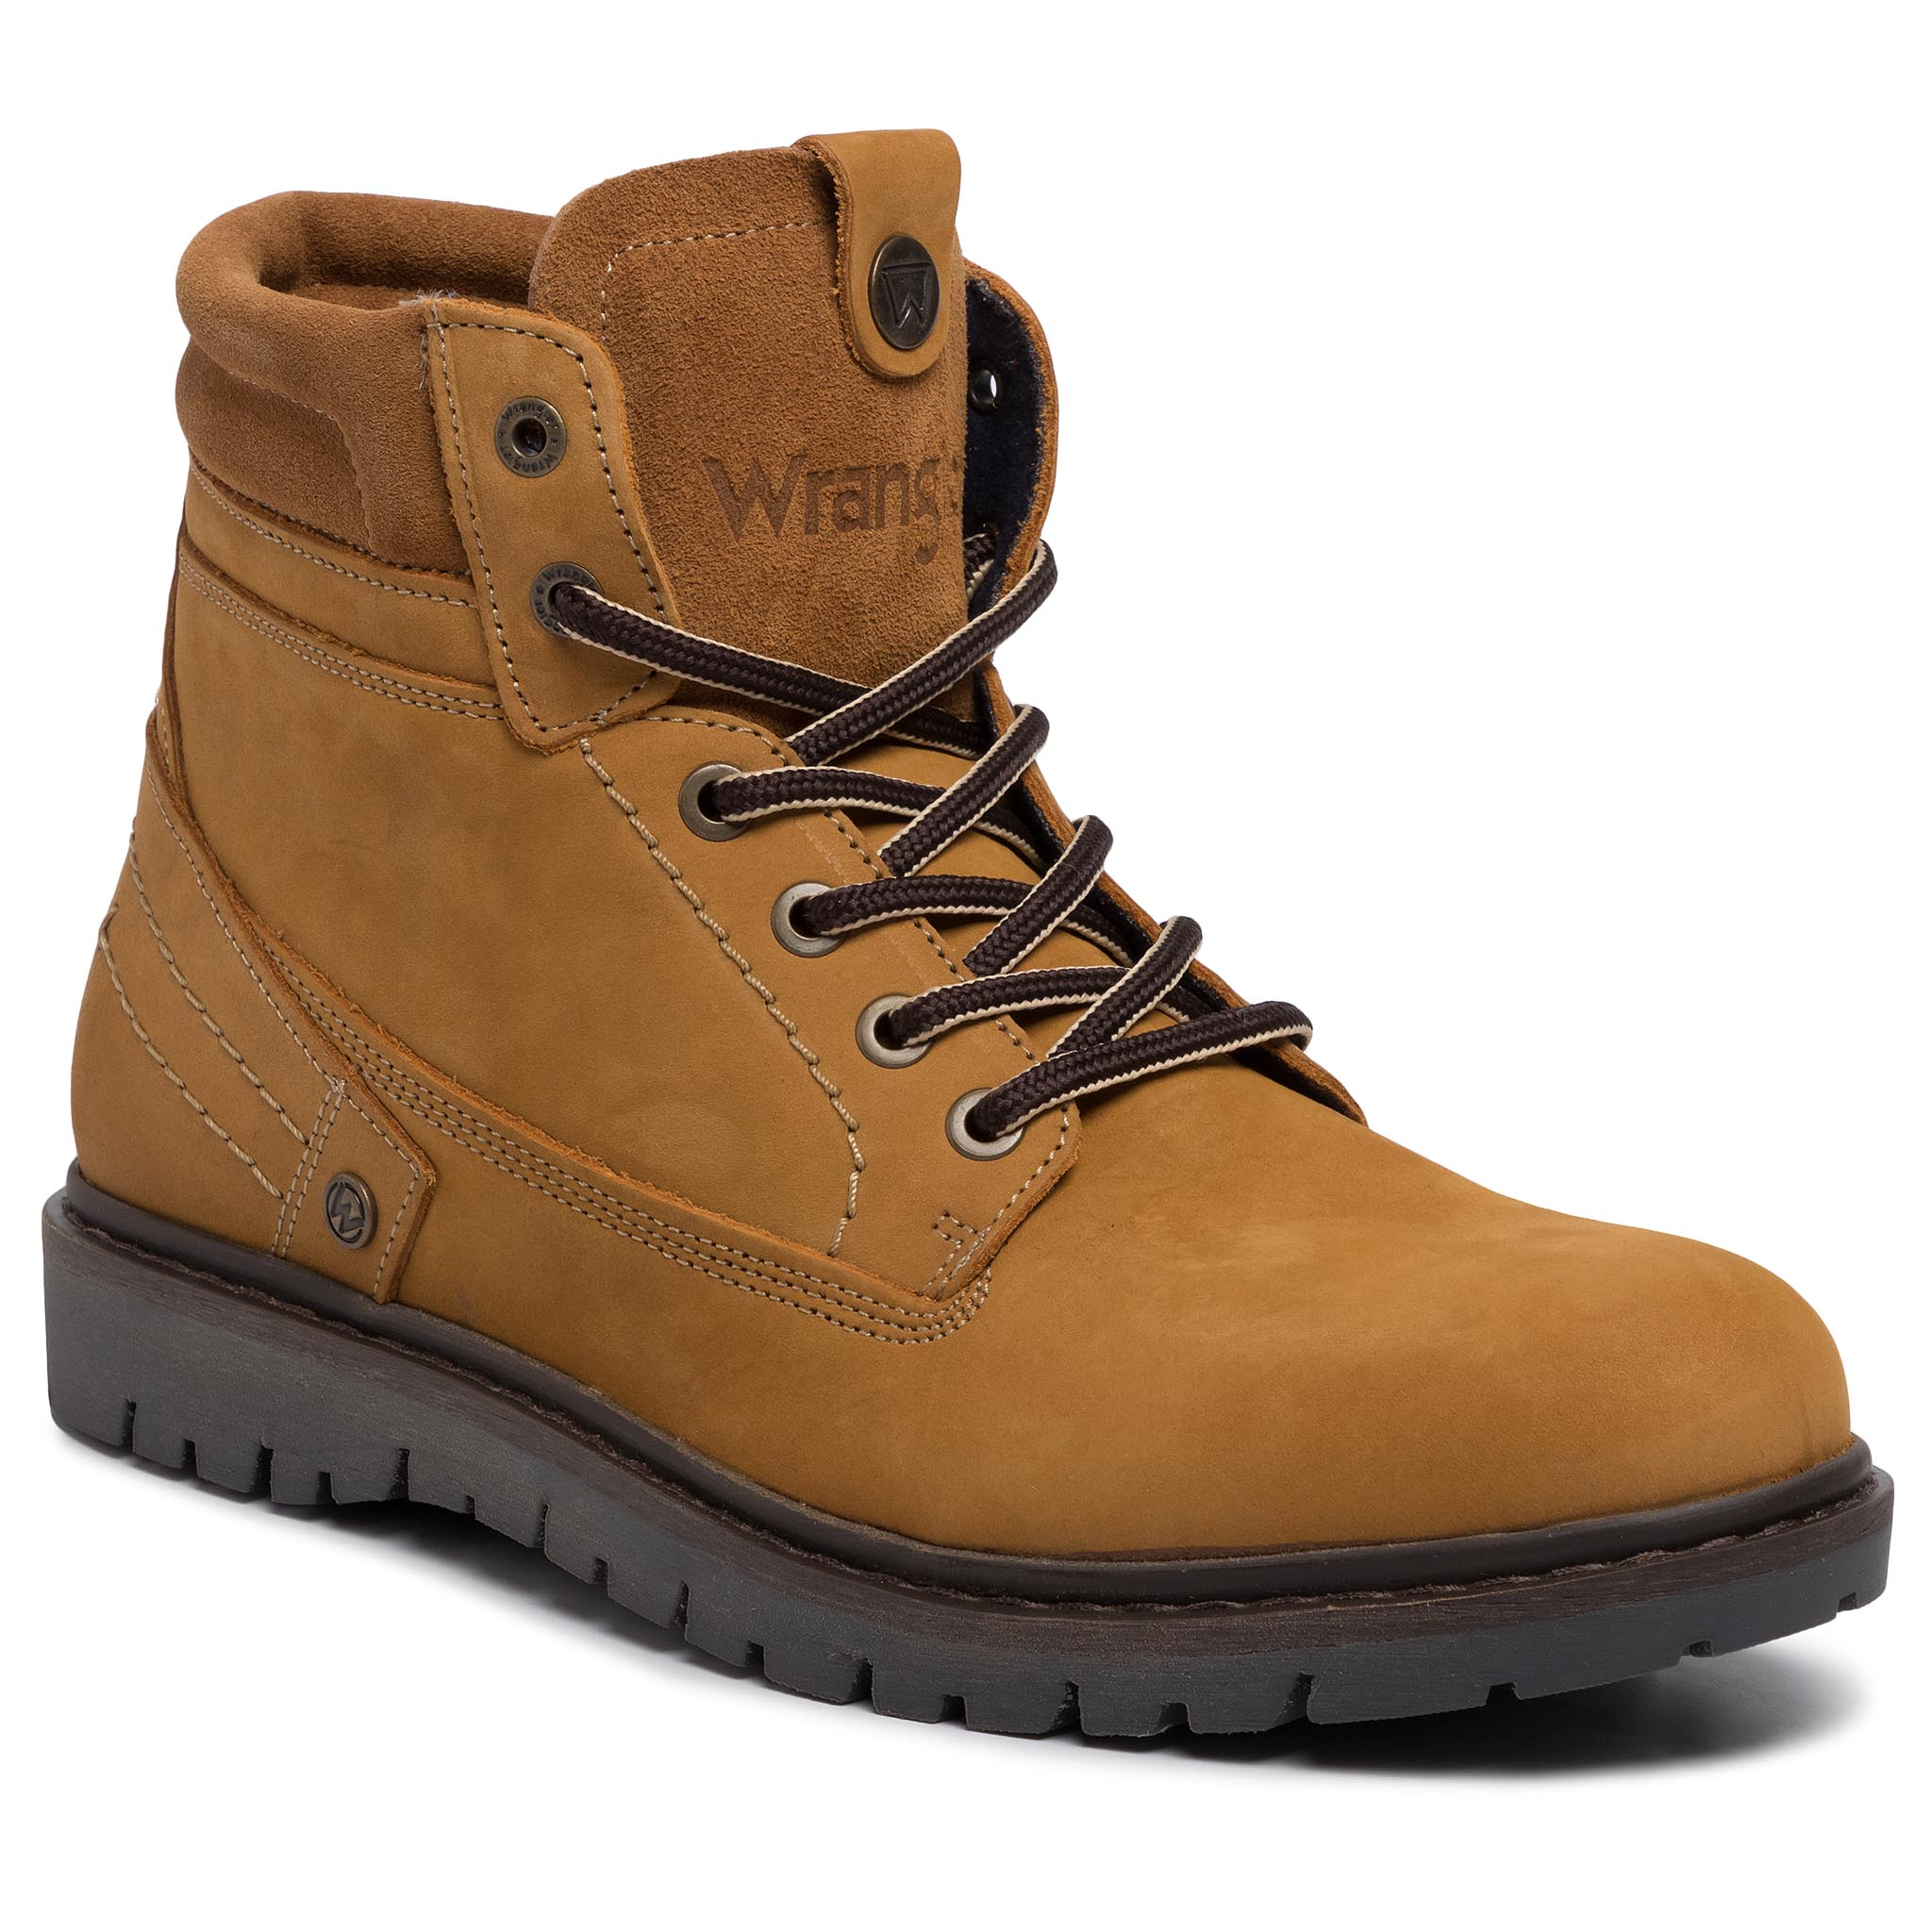 Ghete Wrangler - Miwouk S Wm92035s Tan Yellow 24 imagine